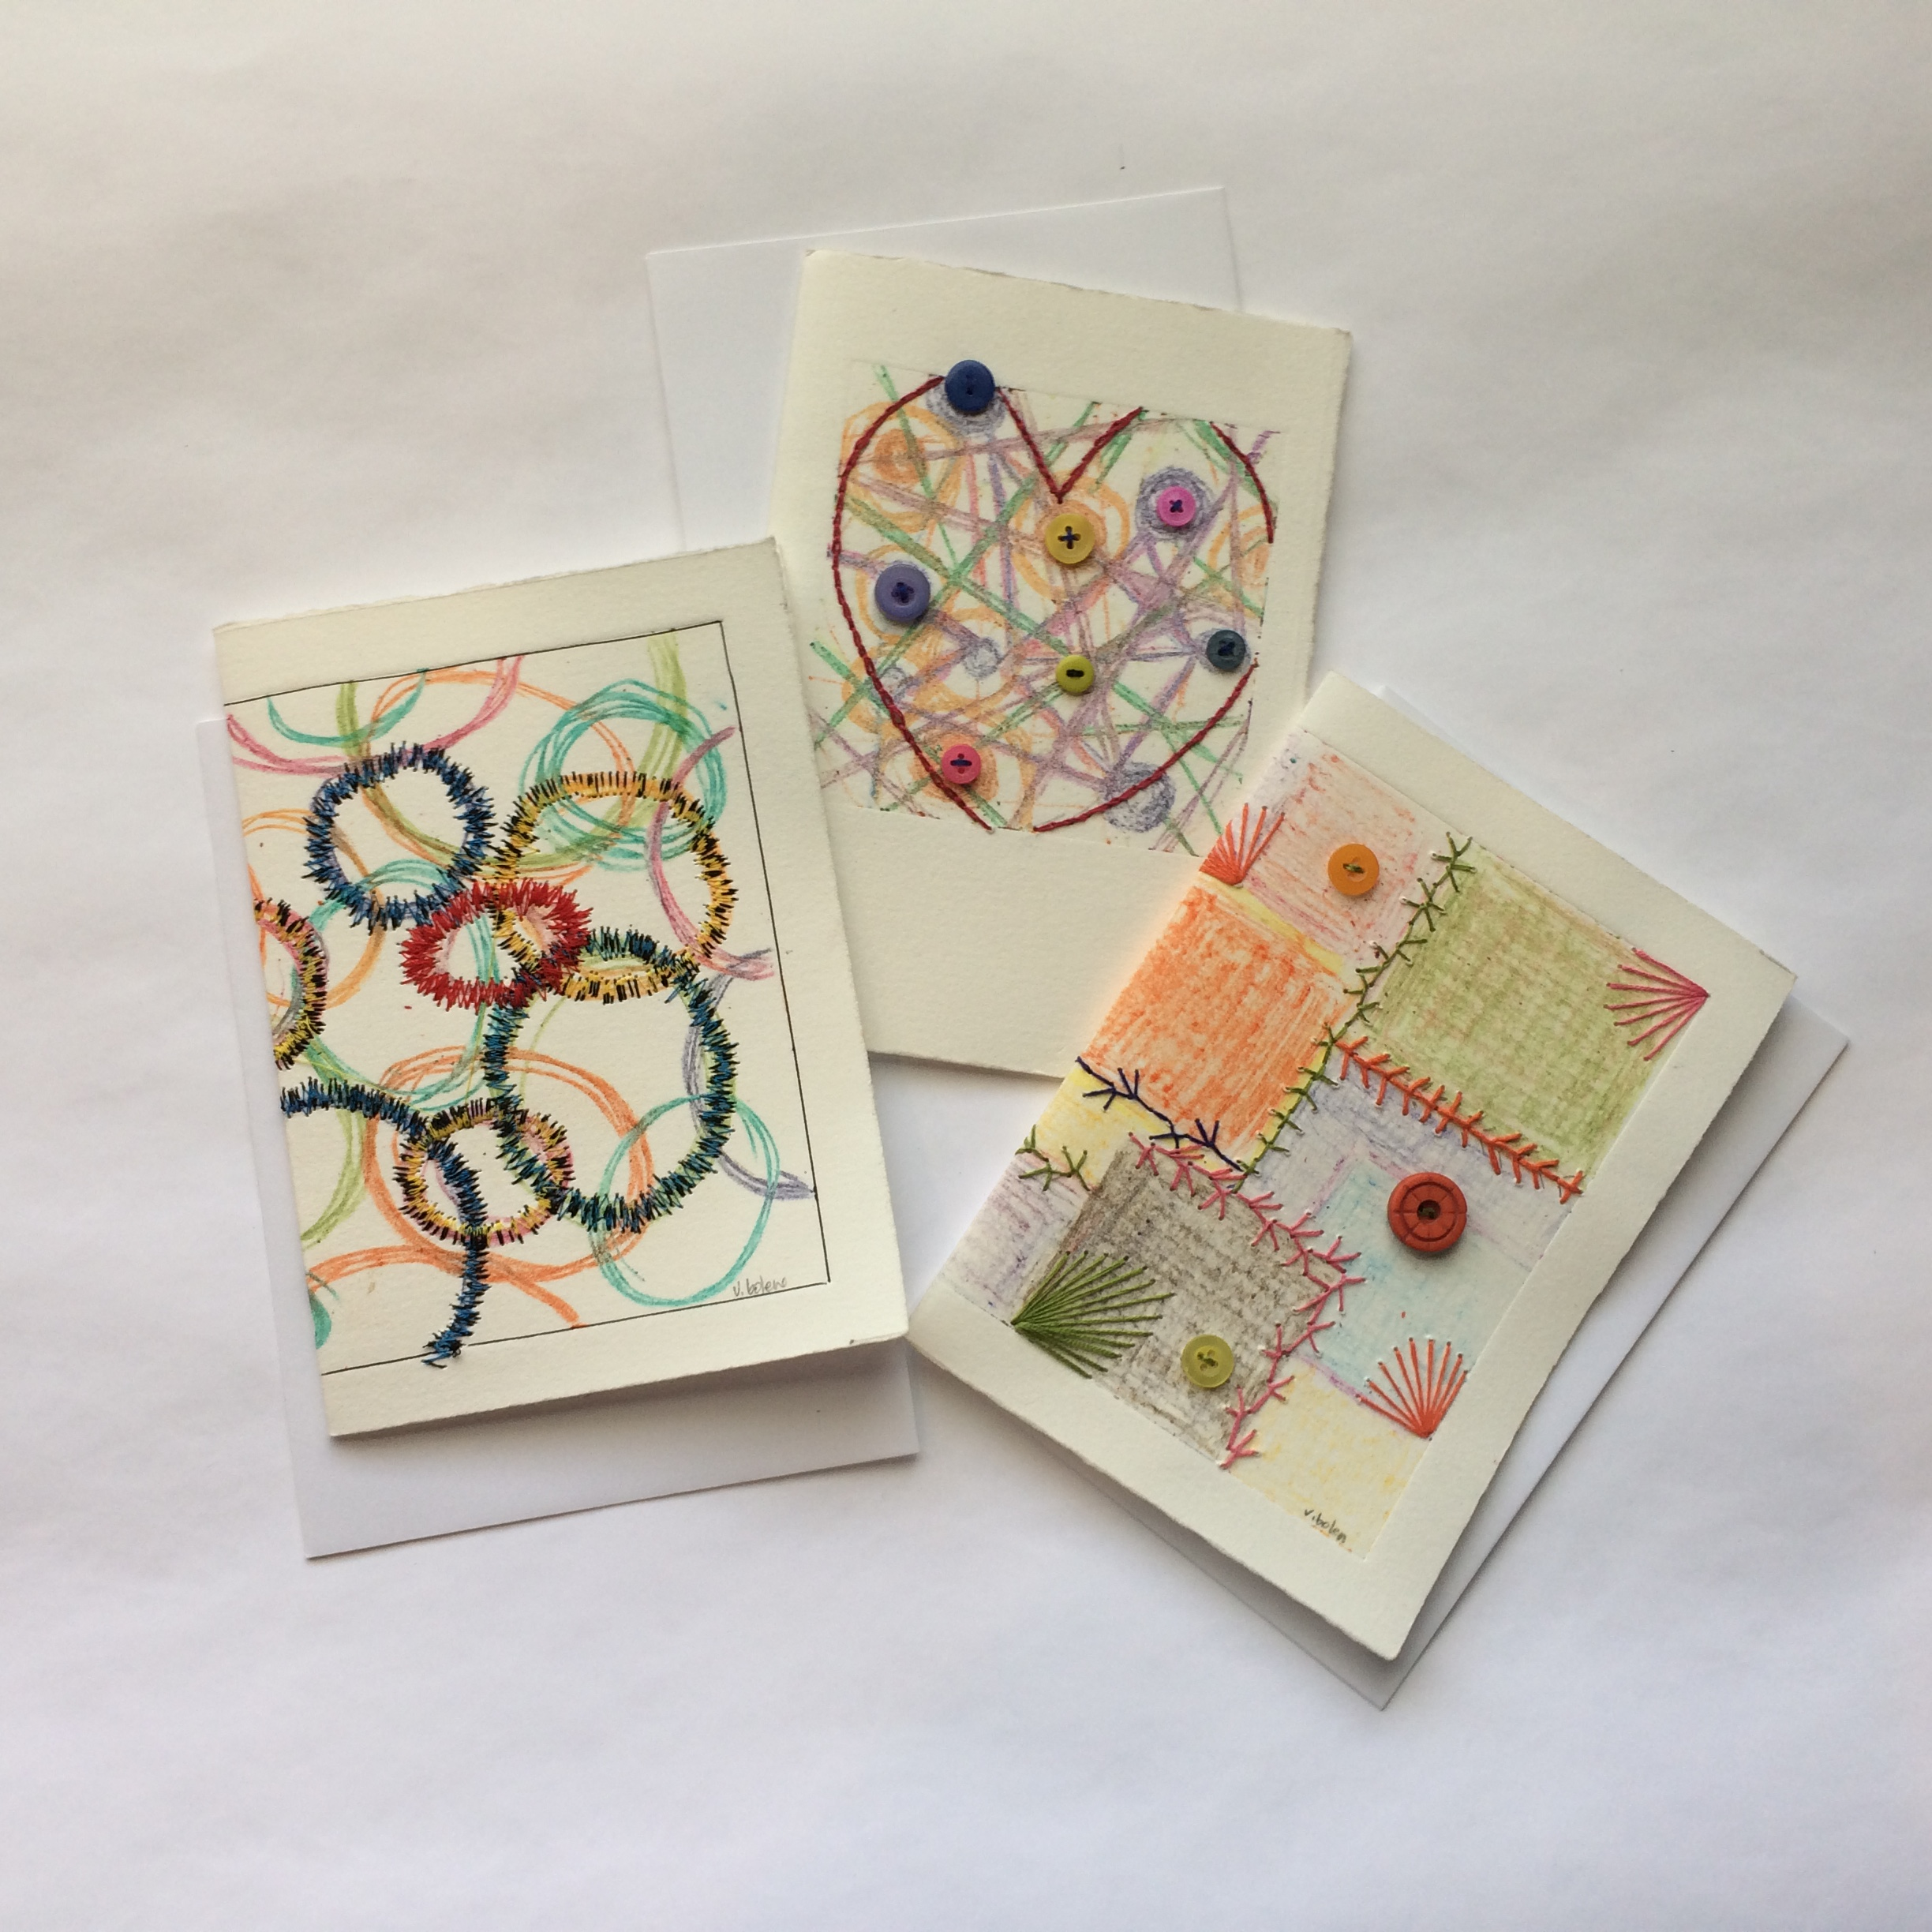 New cards featuring hand and machine embroidery.